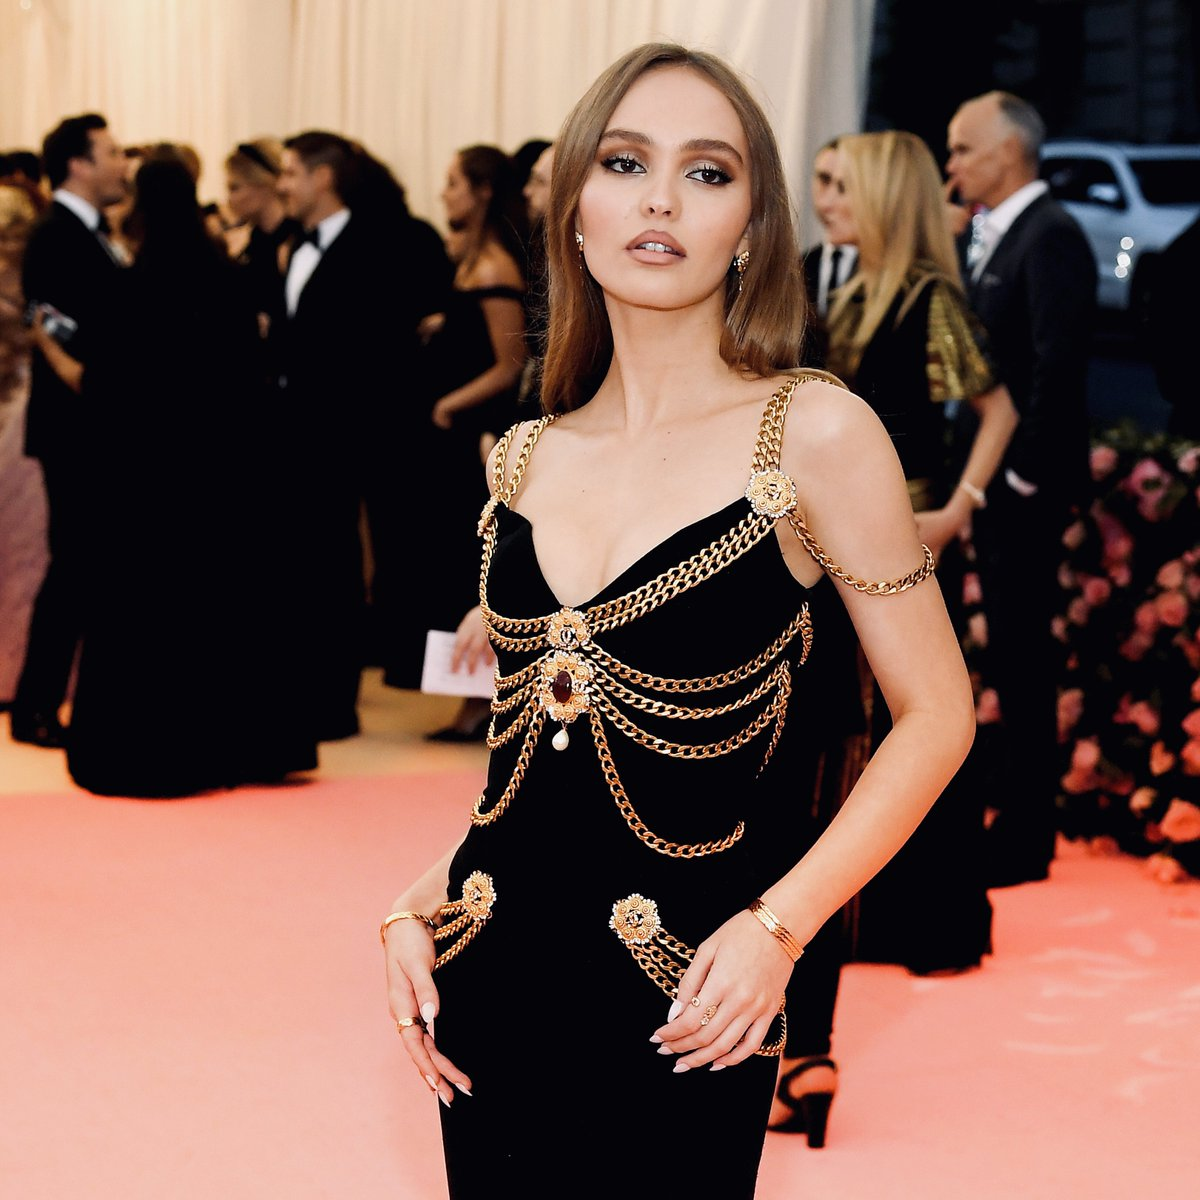 To attend the 2019 #MetGala in New York, actress Lily-Rose Depp wore a #CHANELHauteCouture dress embellished with flower-shaped gold brooches.